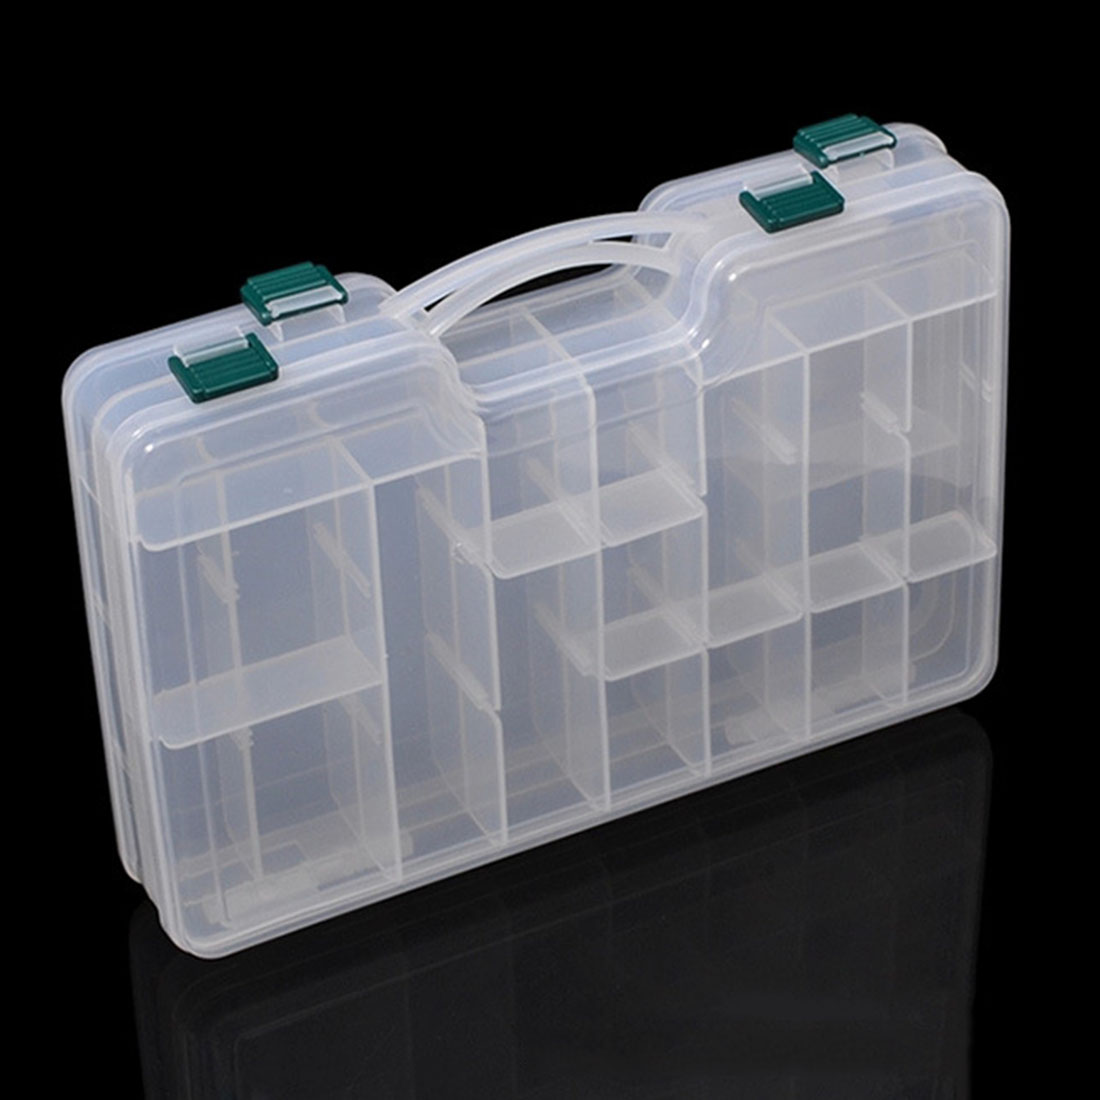 20 Slots 2 Layers Plastic Detachable Fly Fishing Lure Tackle Box Double Sided High Strength Transparent Visible with Drain Hole(China (Mainland))